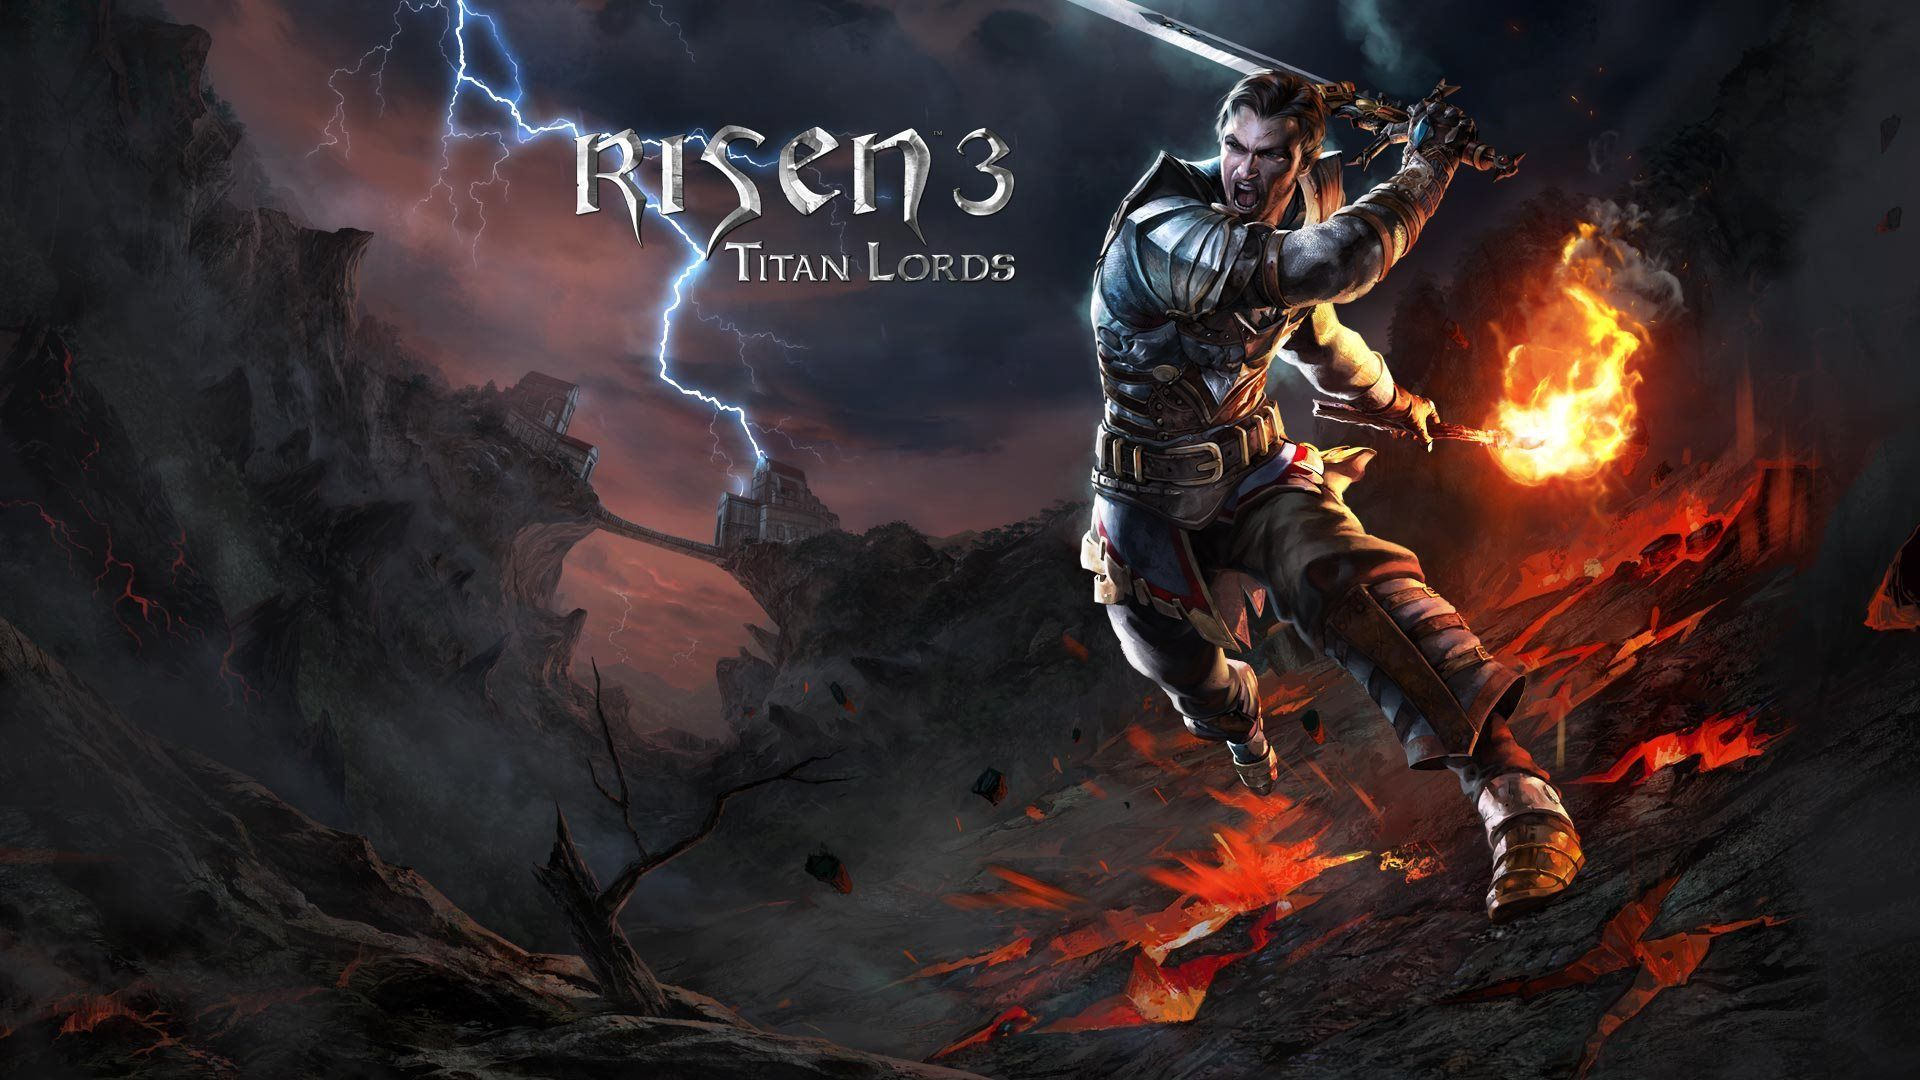 Risen 3 Titan Lords Wallpaper Game Hd Wallpapers Lord Games